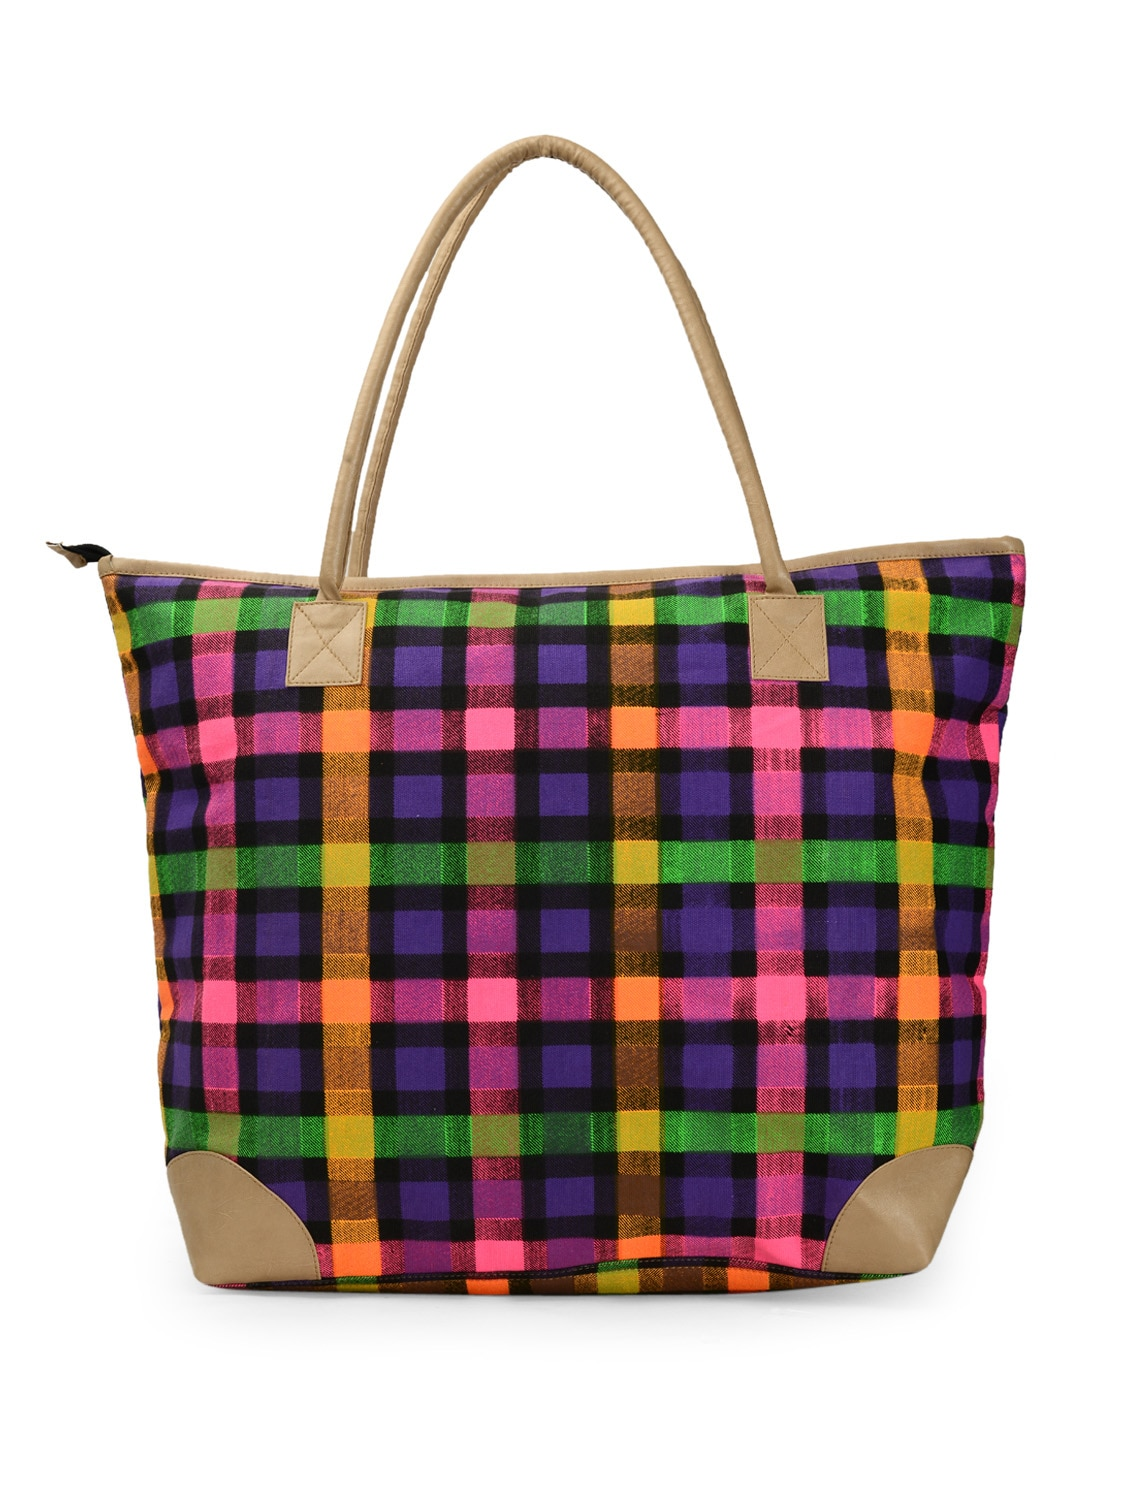 Multi-coloured Checkered Prints Tote Bag - Moac